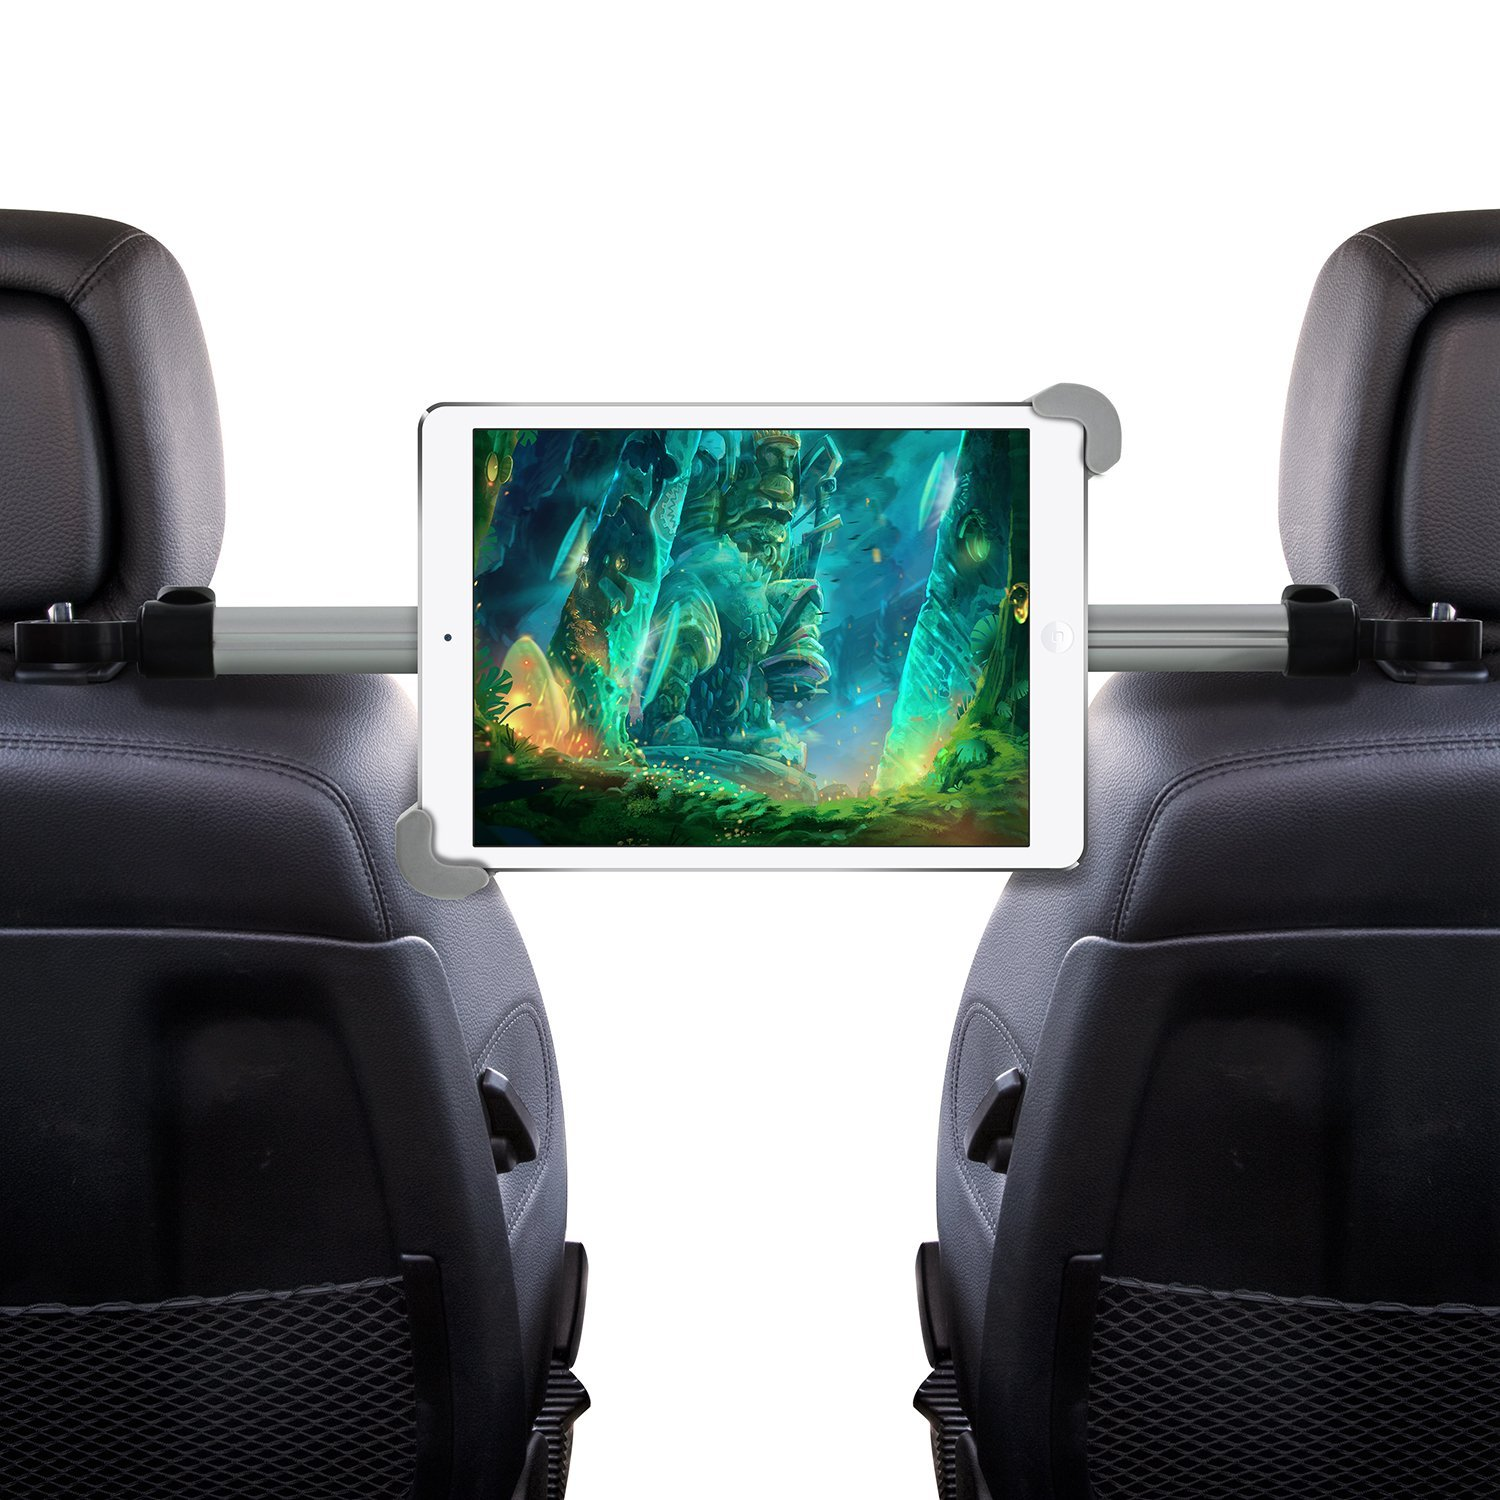 Okra Universal Tablet Car Headrest Grip Mount Center Holder, with 360 Degree Rotation- for Apple iPad, Samsung Galaxy Tab and all Tablets up to 11 Inch